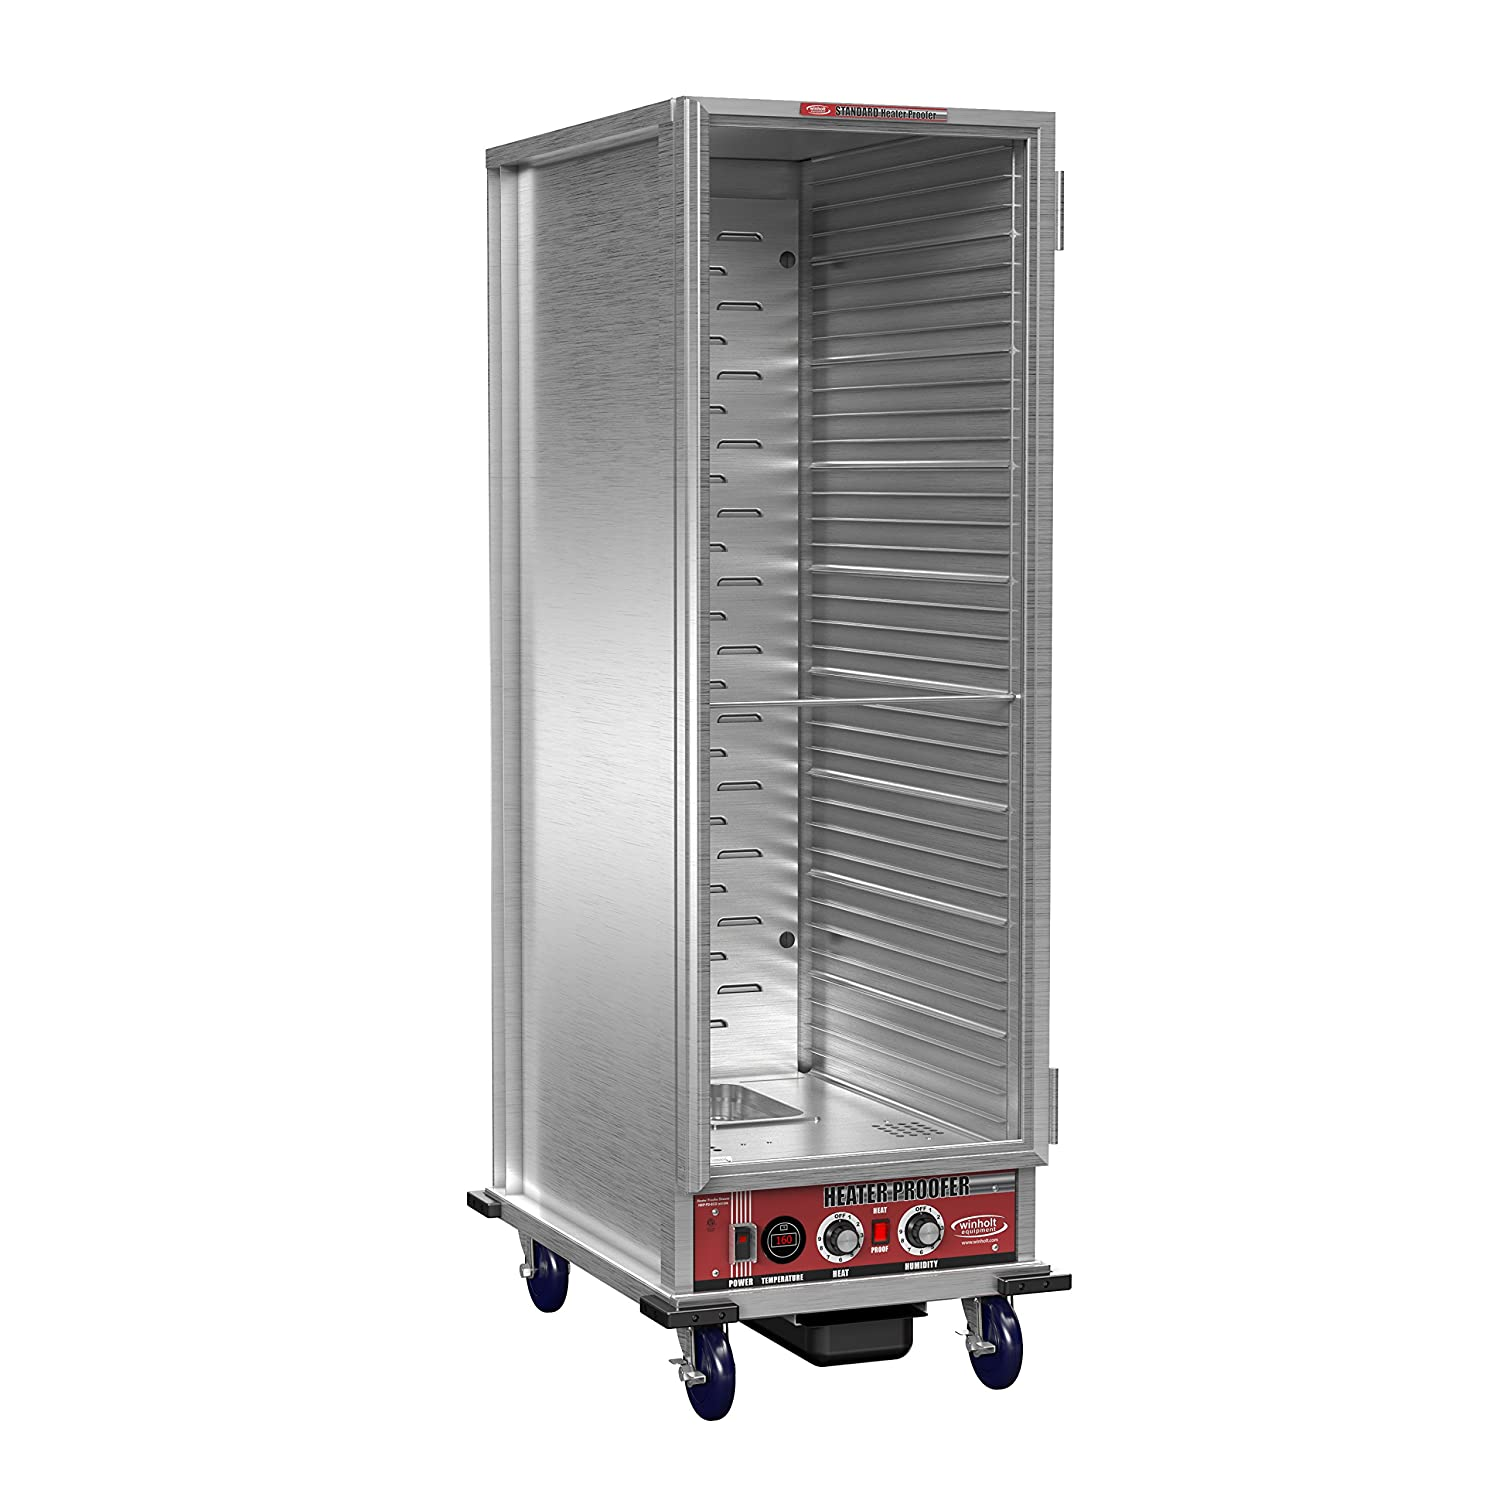 Winholt NHPL-1836C Non-Insulated Heater Proofer/Holding Cabinet with Corner Bumpers